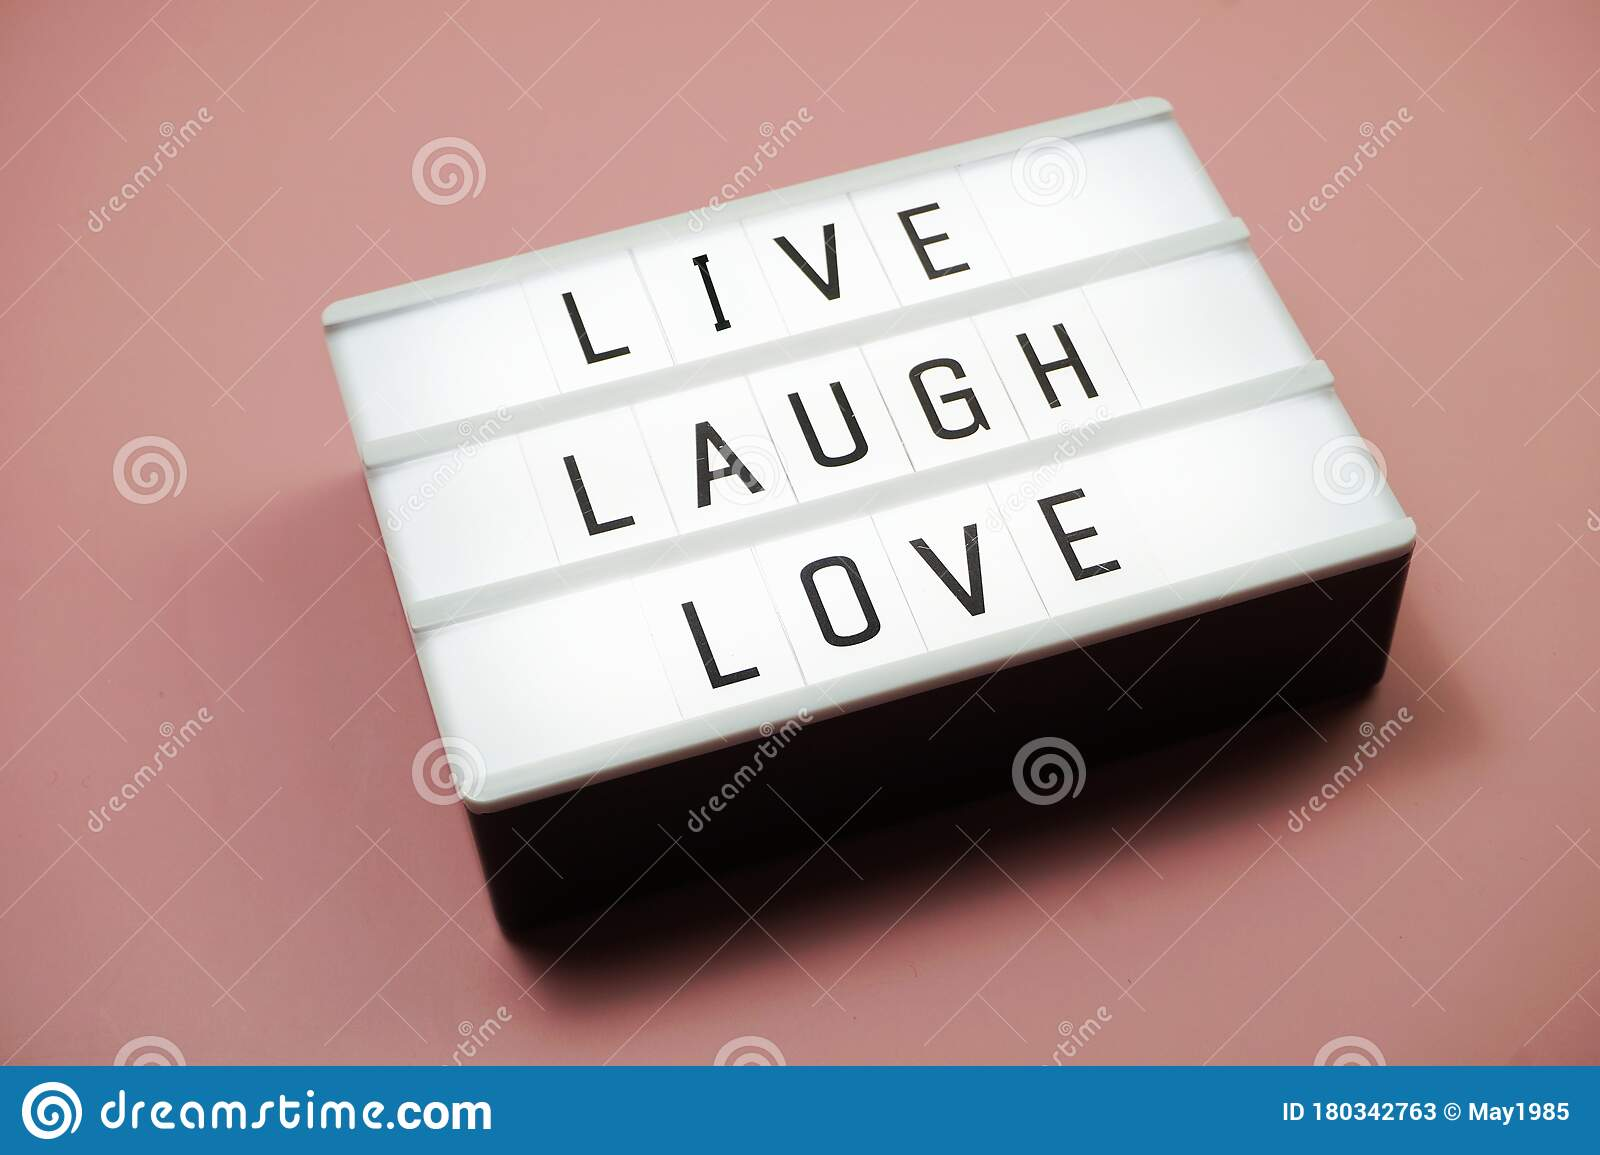 Download Live Laugh Love Background Pictures